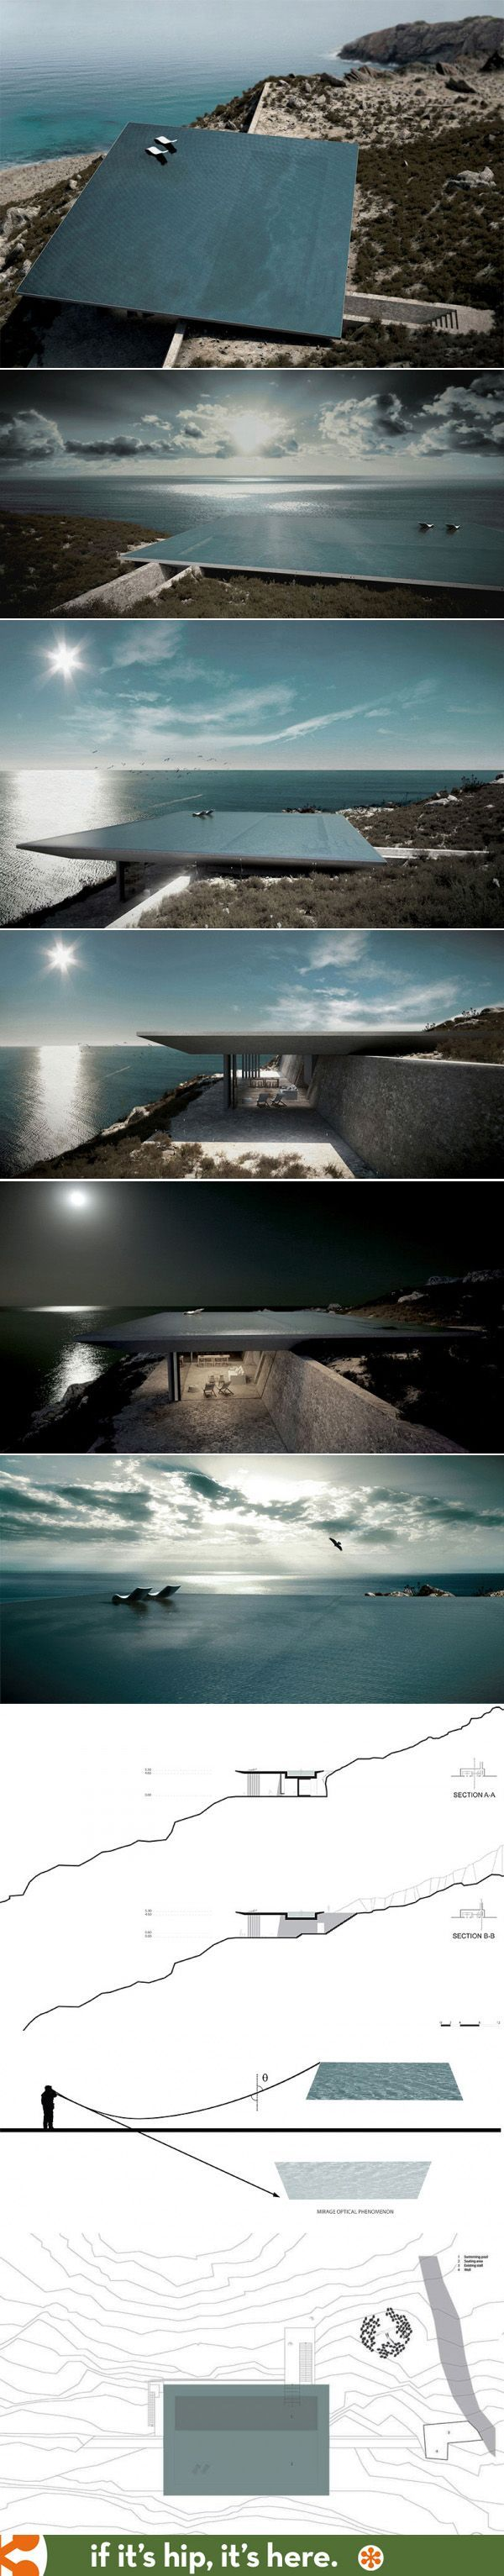 Rimless pool serves as a roof for the Mirage House in Greece by Kois Architects: